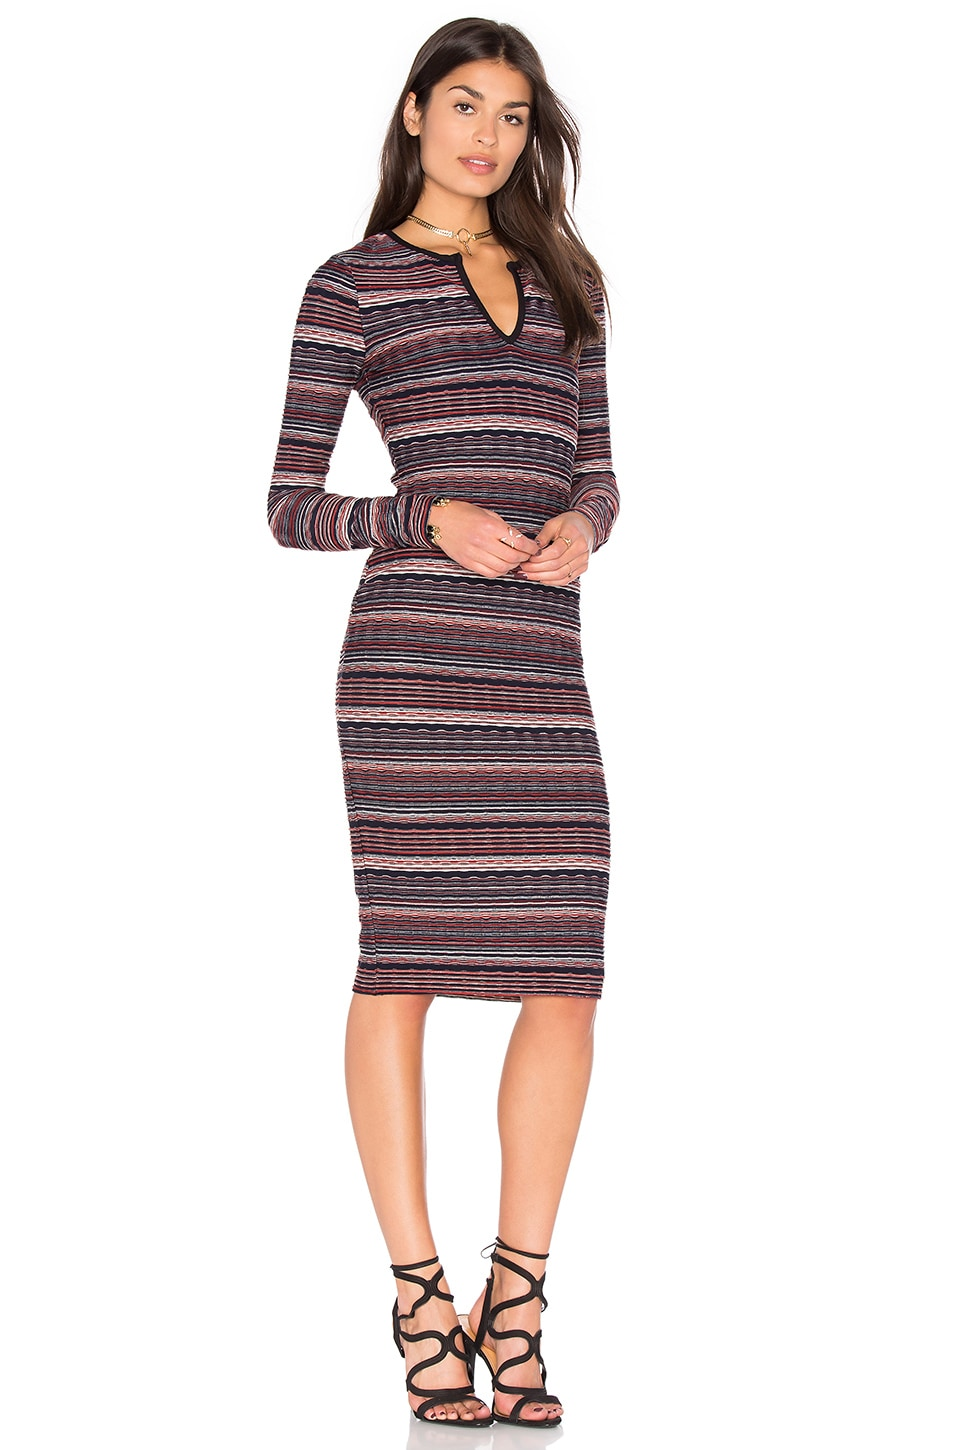 Division Stripe Dress by twenty